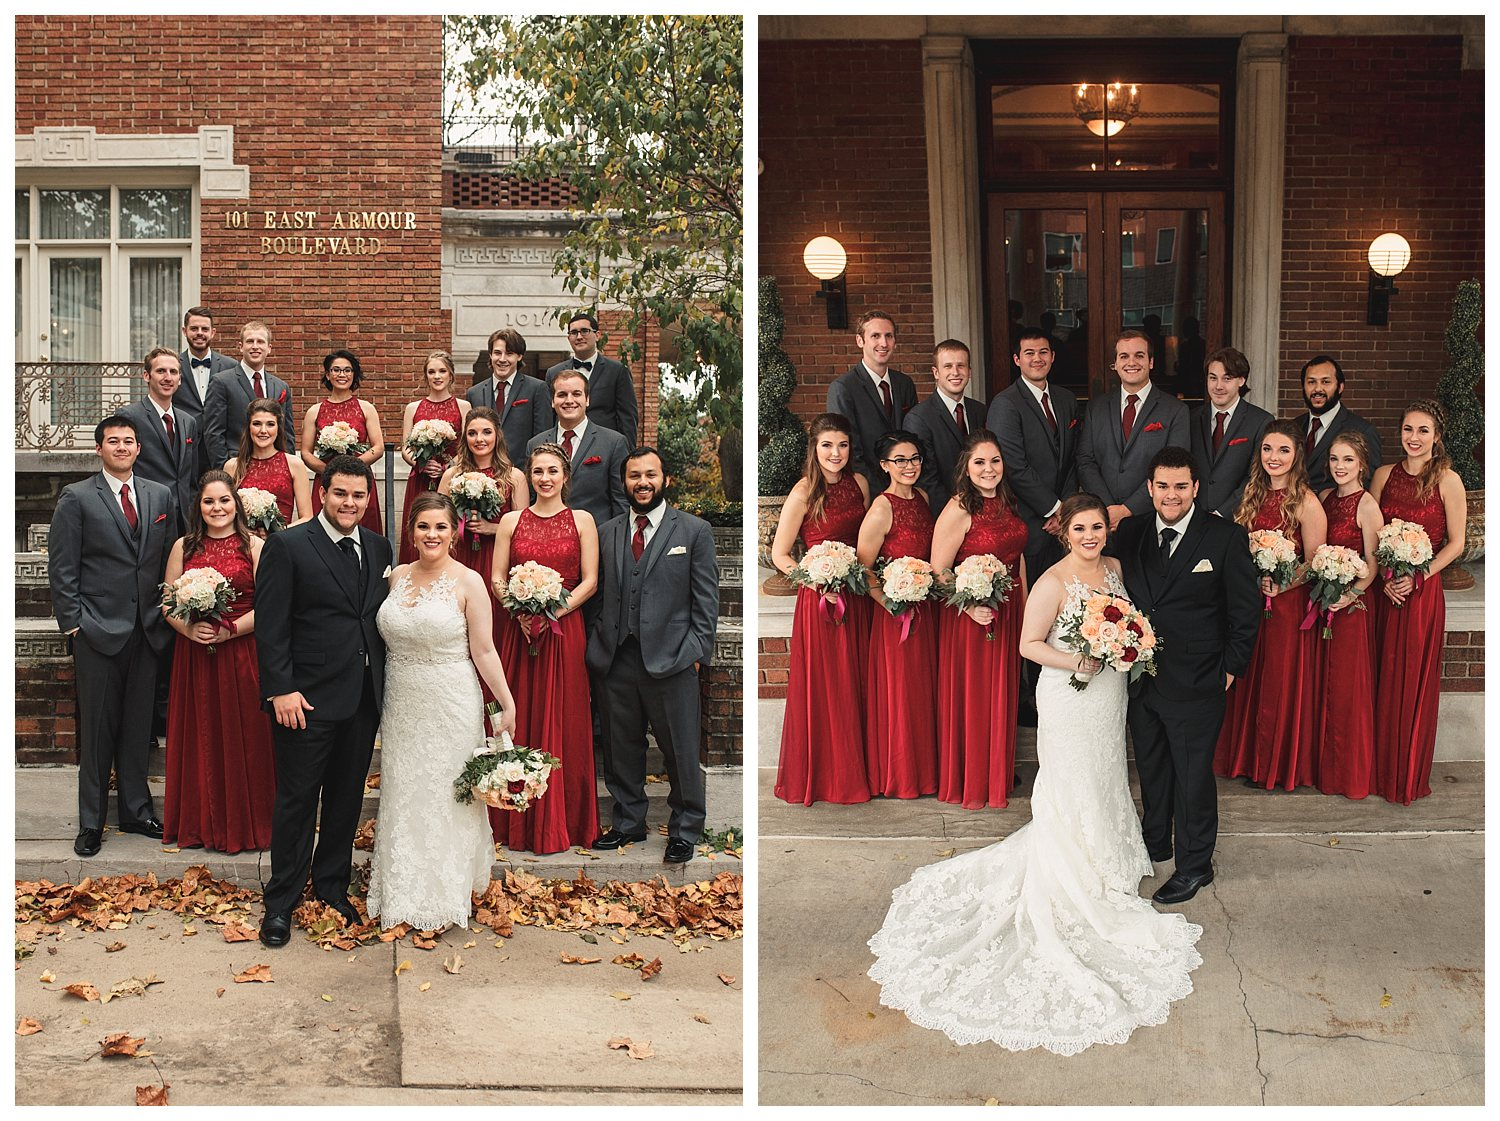 Kelsey_Diane_Photography_Loose_Mansion_Wedding_Photography_Kansas_City_Victor_Lyndsay_0130.jpg